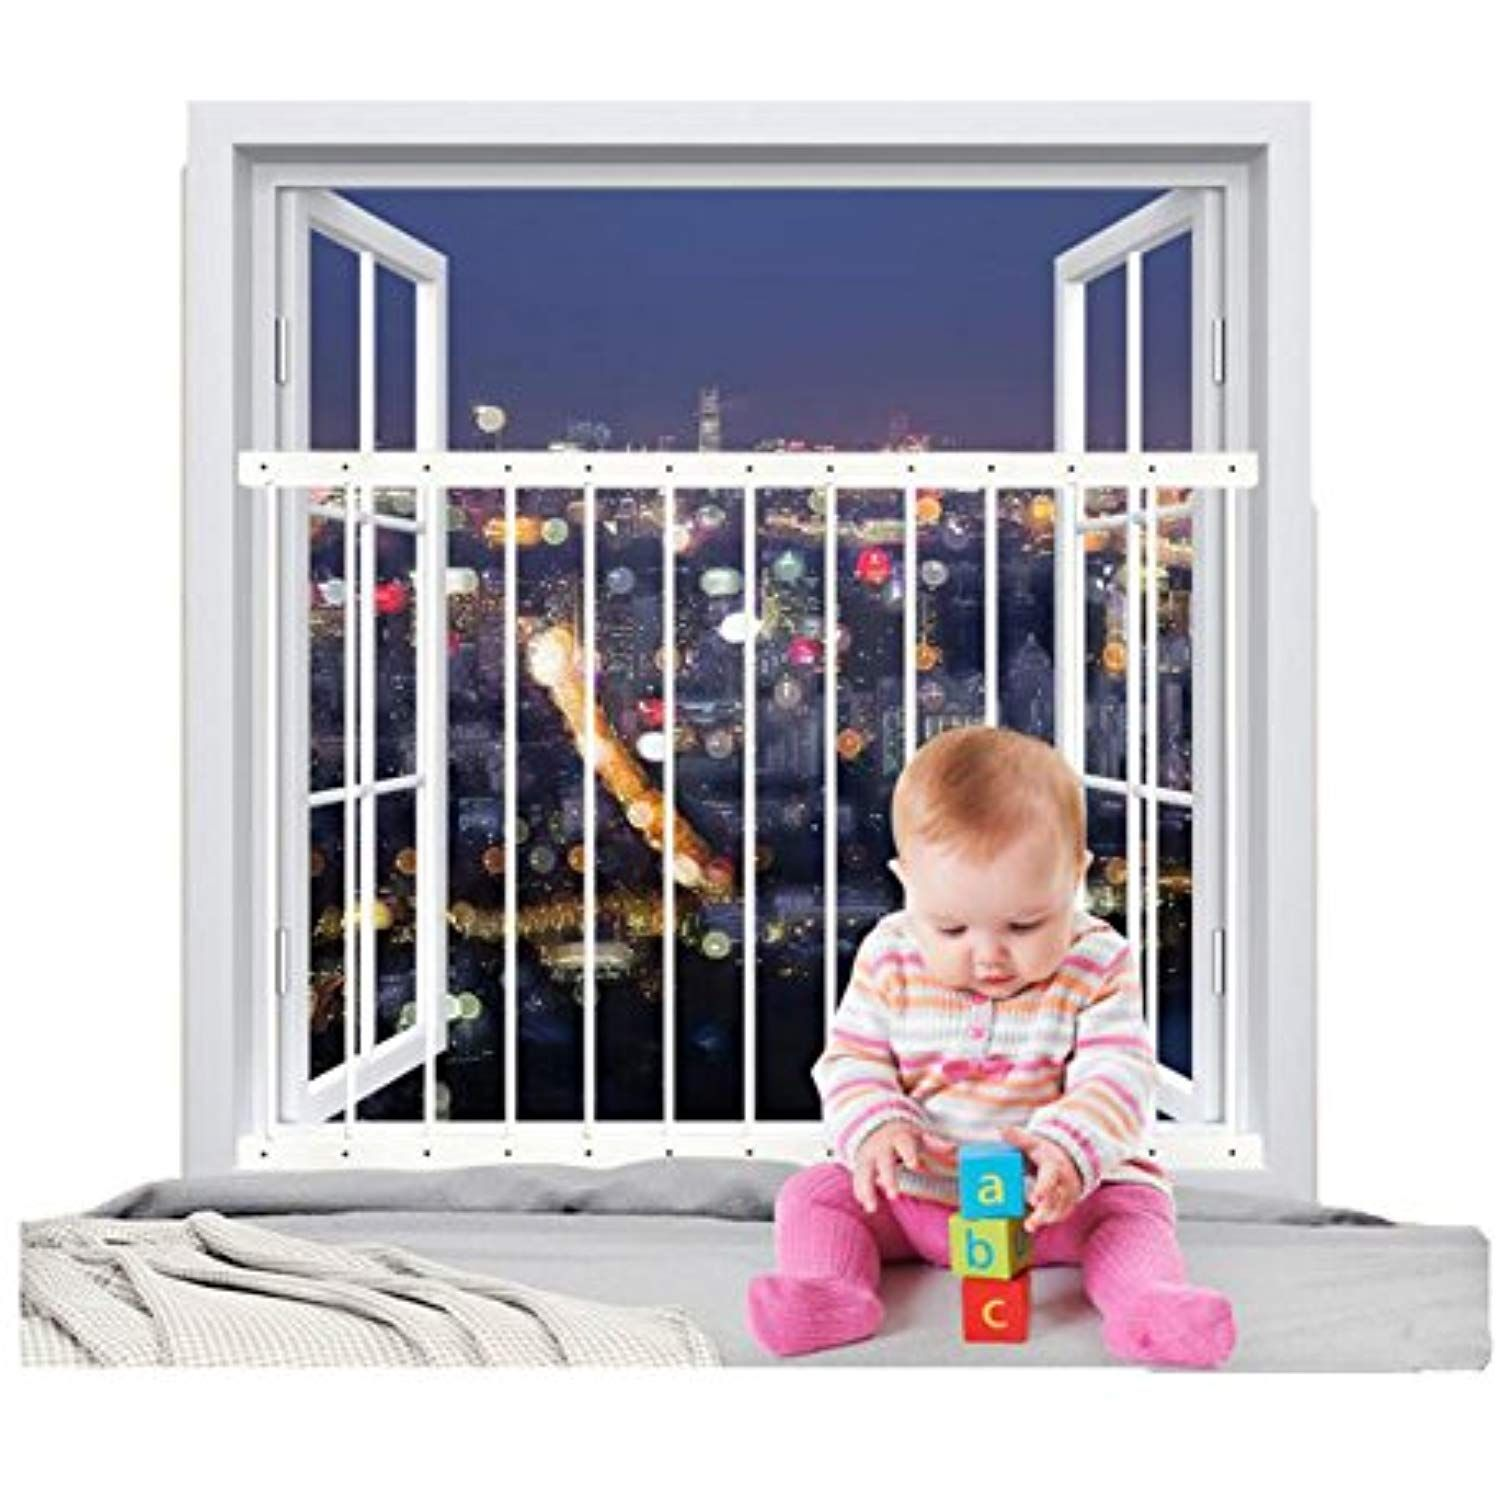 Fairy Baby Removeable Child Safety Window Guards Indoor Fit 31 8 36 6 Inches Wide Read More Reviews Of The Product By Child Safety Baby Fairy Baby Proofing